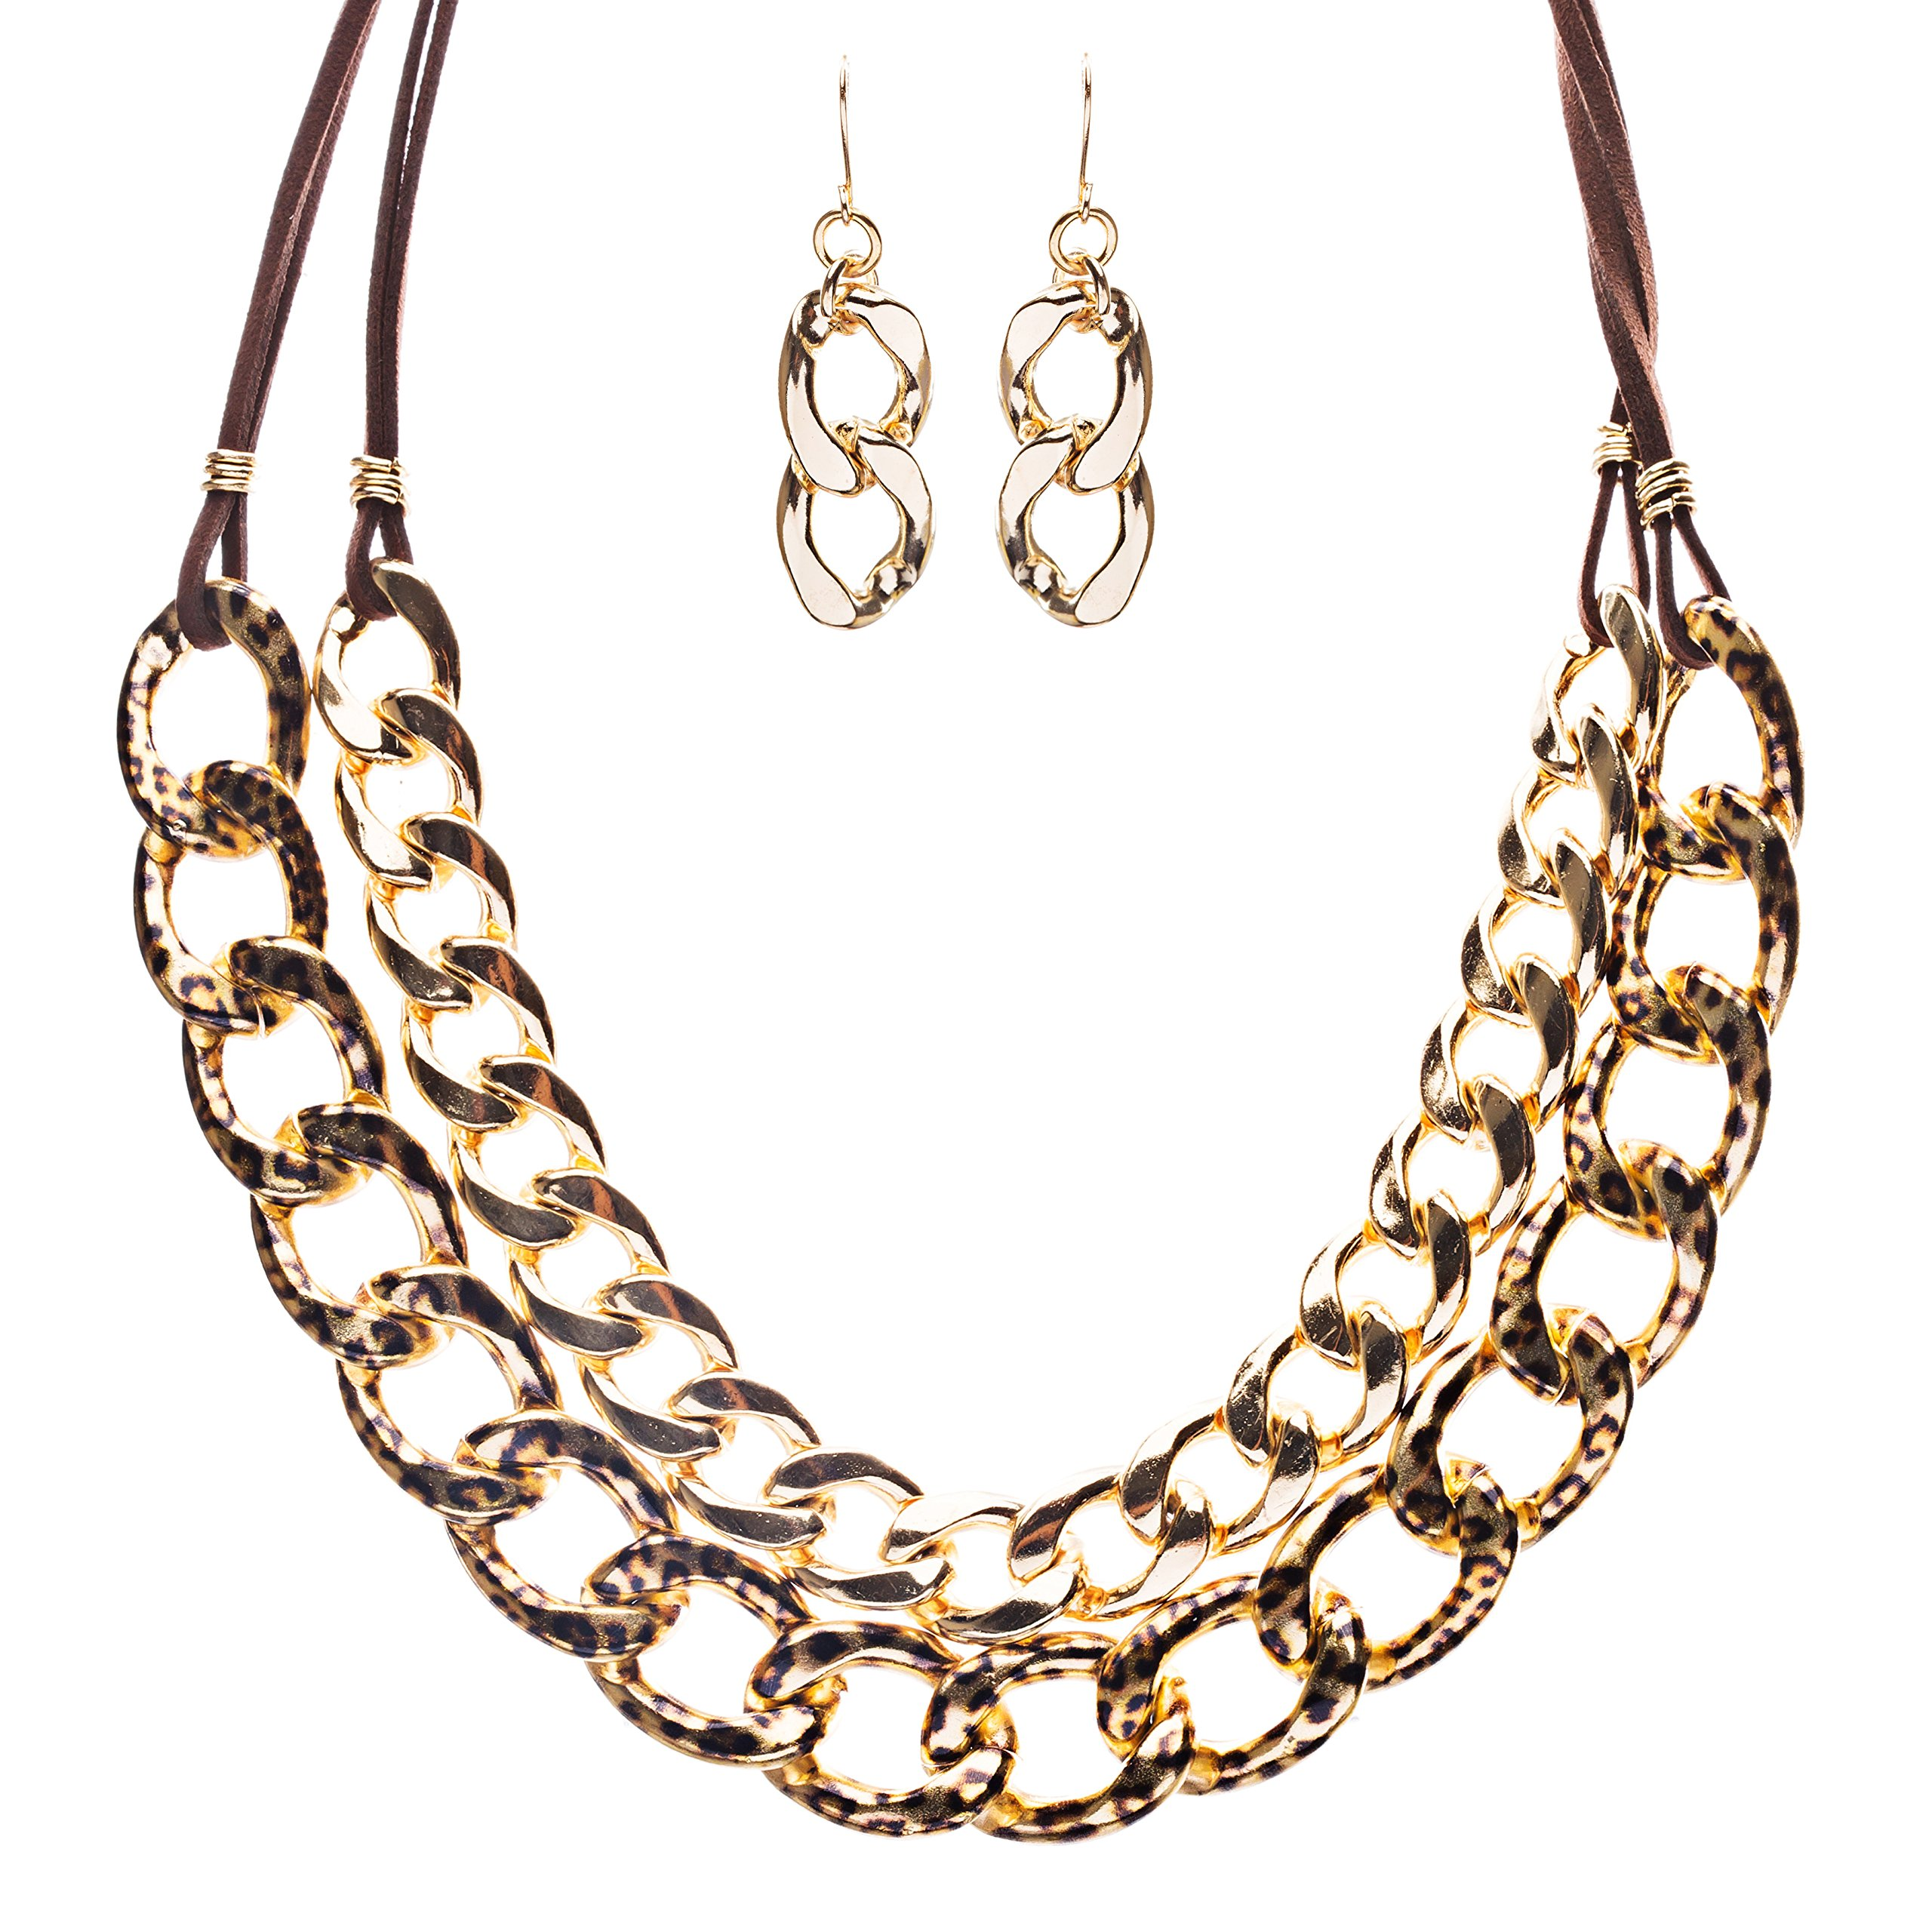 Modern Fashion Dainty Gold Plate Chain And Faux Leather Necklace Set JN226 Brown